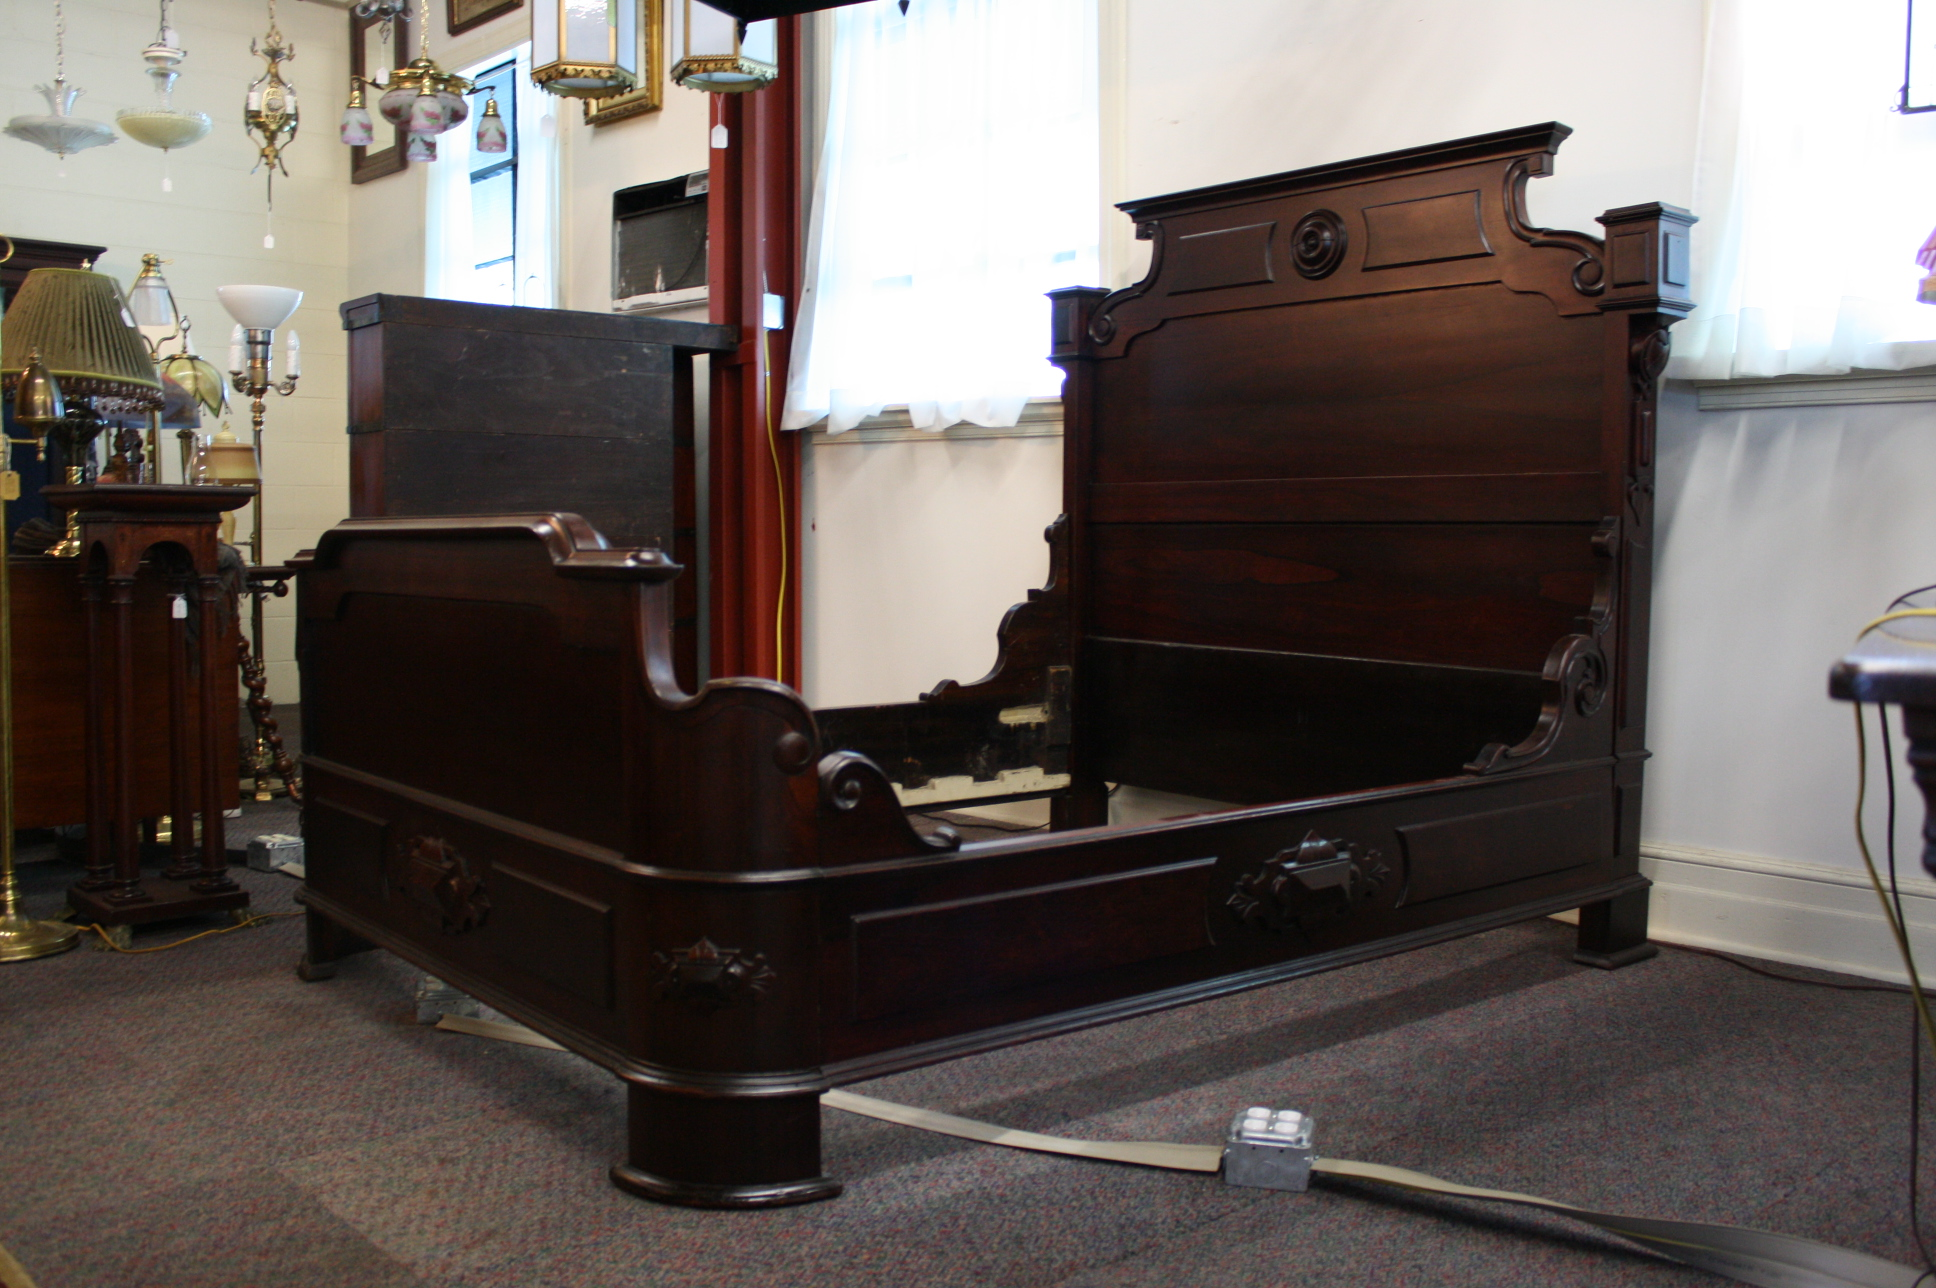 Antique bedroom furniture 1900 - 1900 Rosewood Double Bed With Curved Footboard For Sale